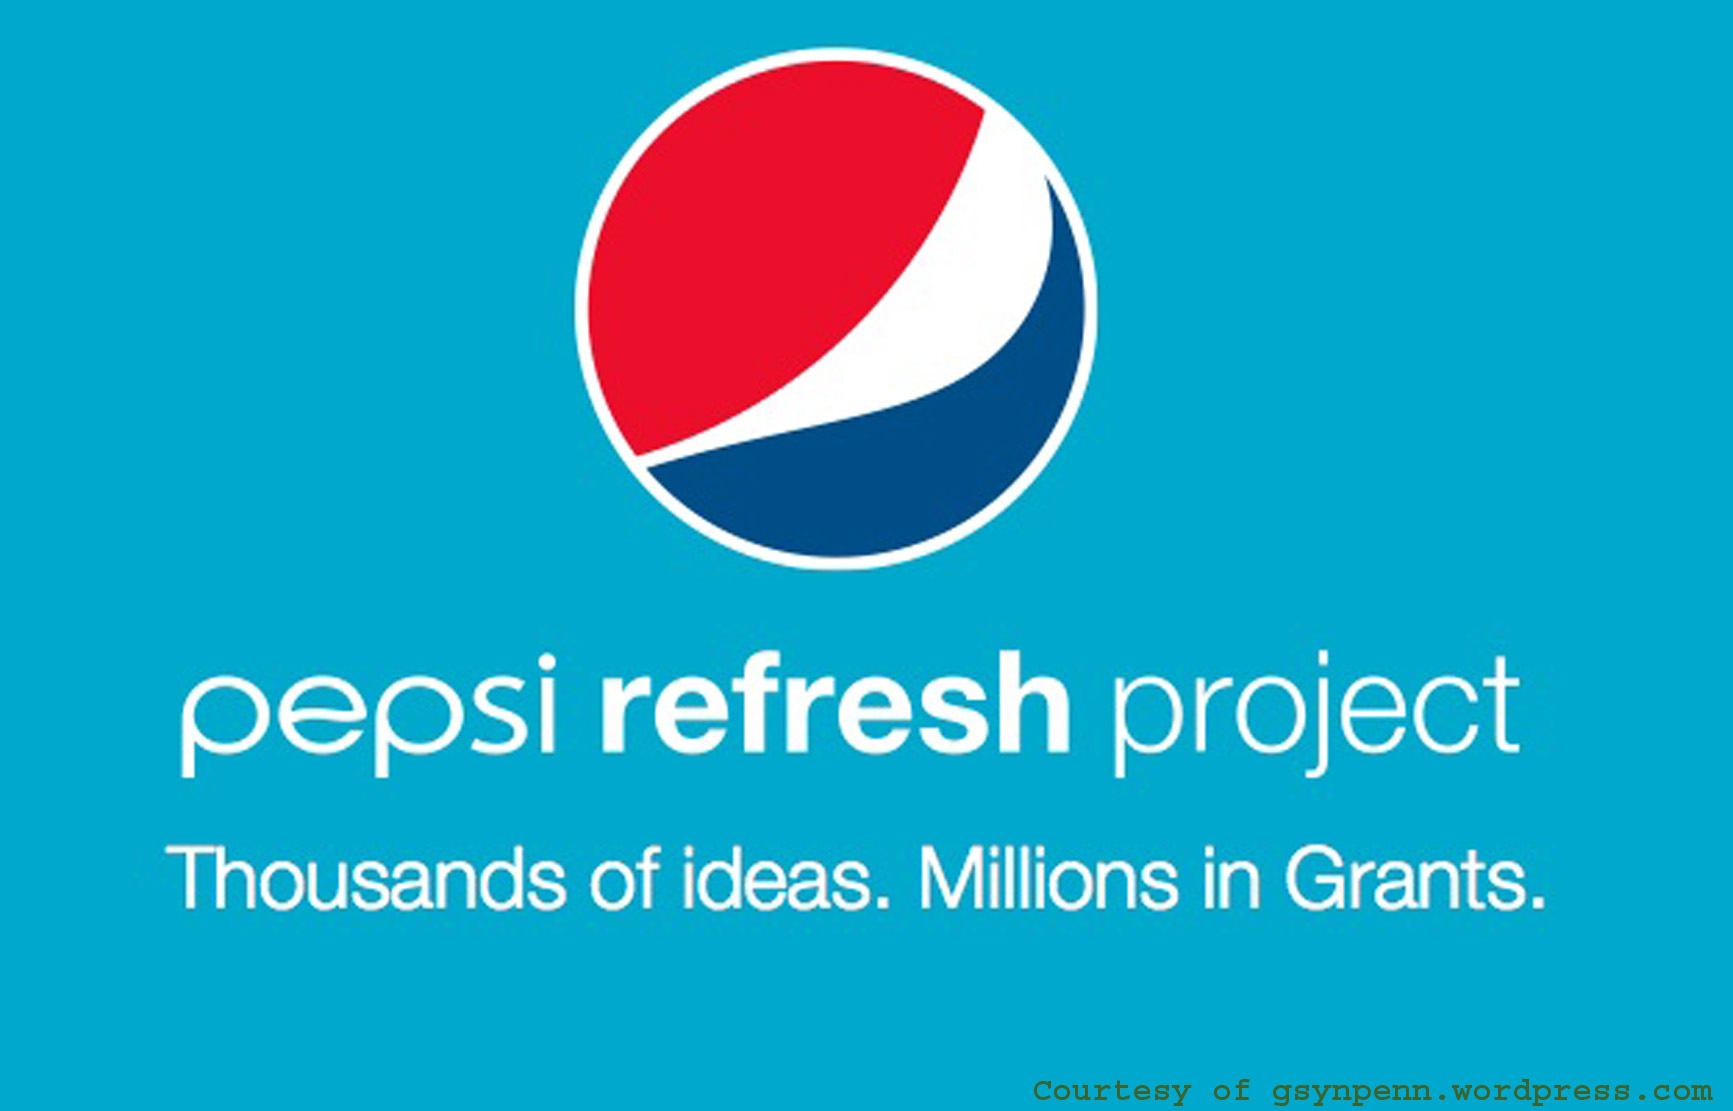 Pepsi issued several $25,000 grants to schools and other groups to help with community projects.